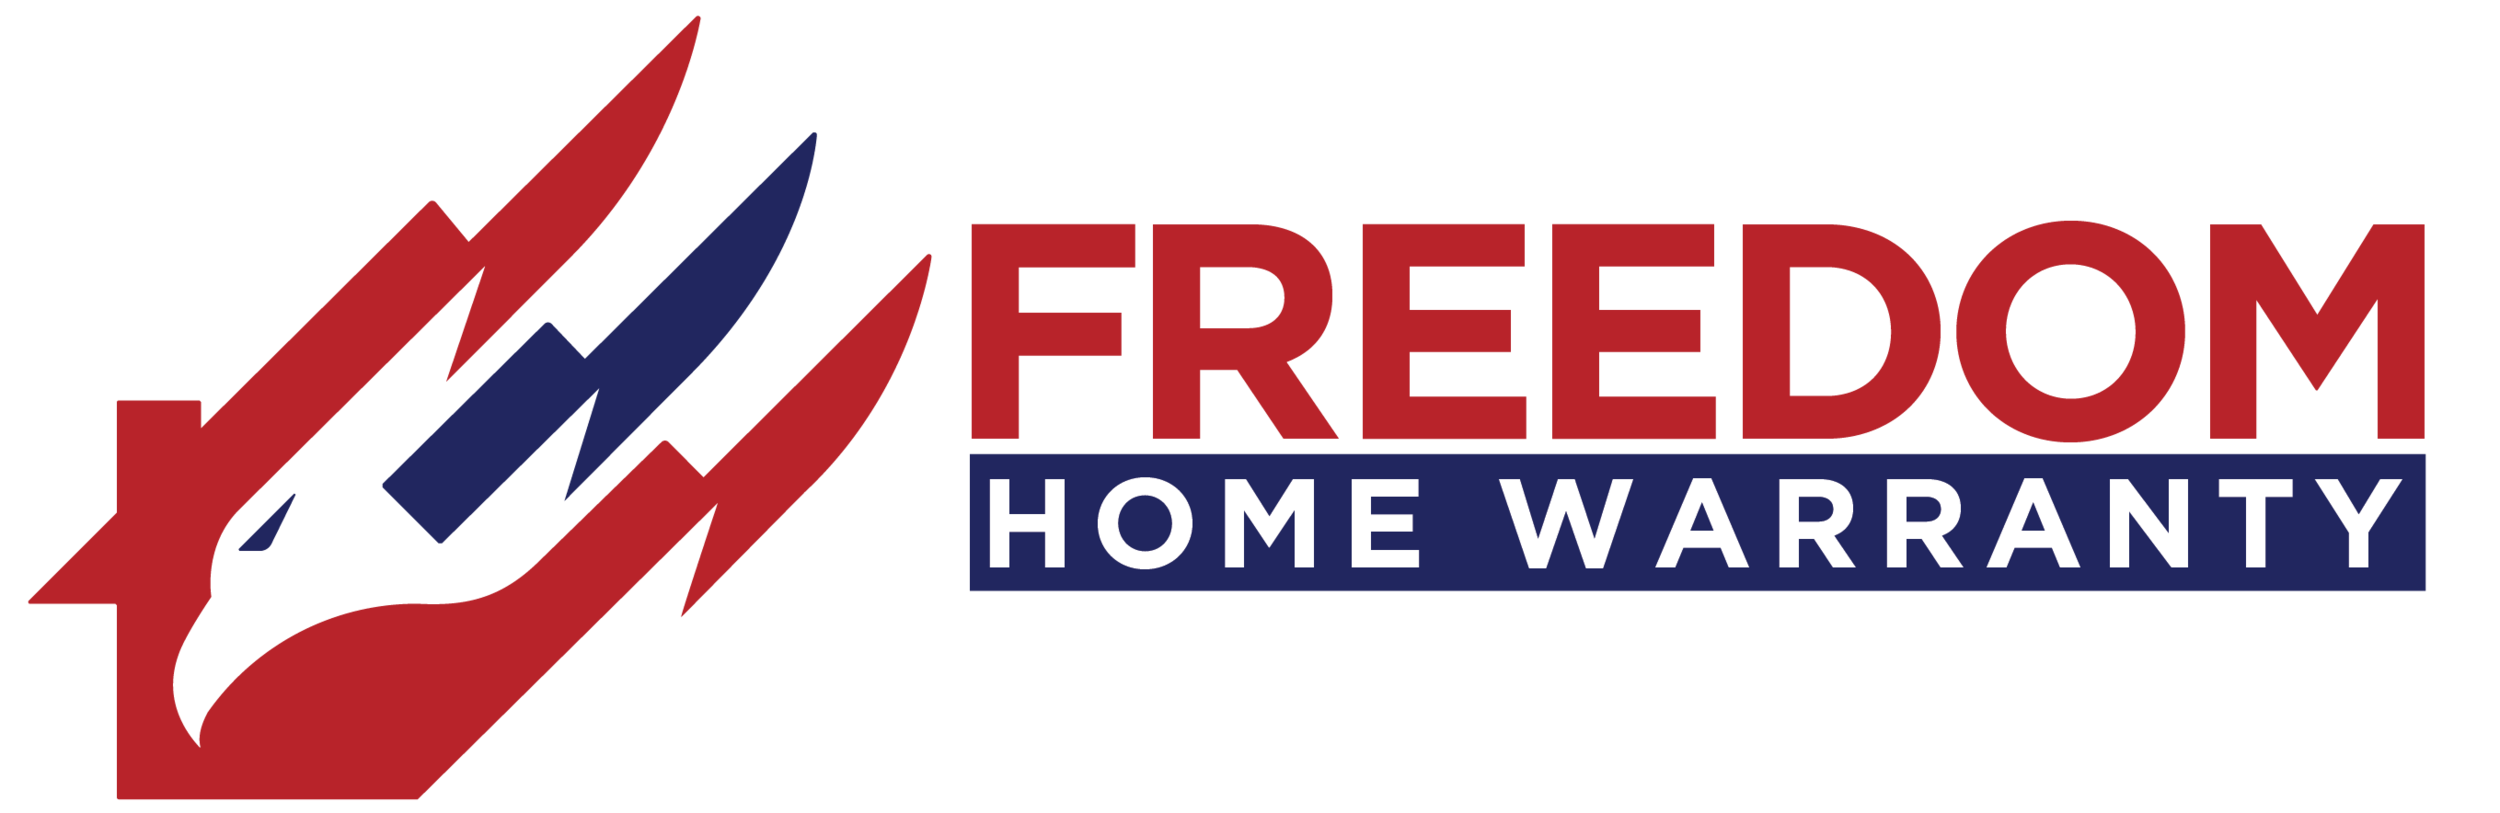 Freedom Home Warranty Logo.png